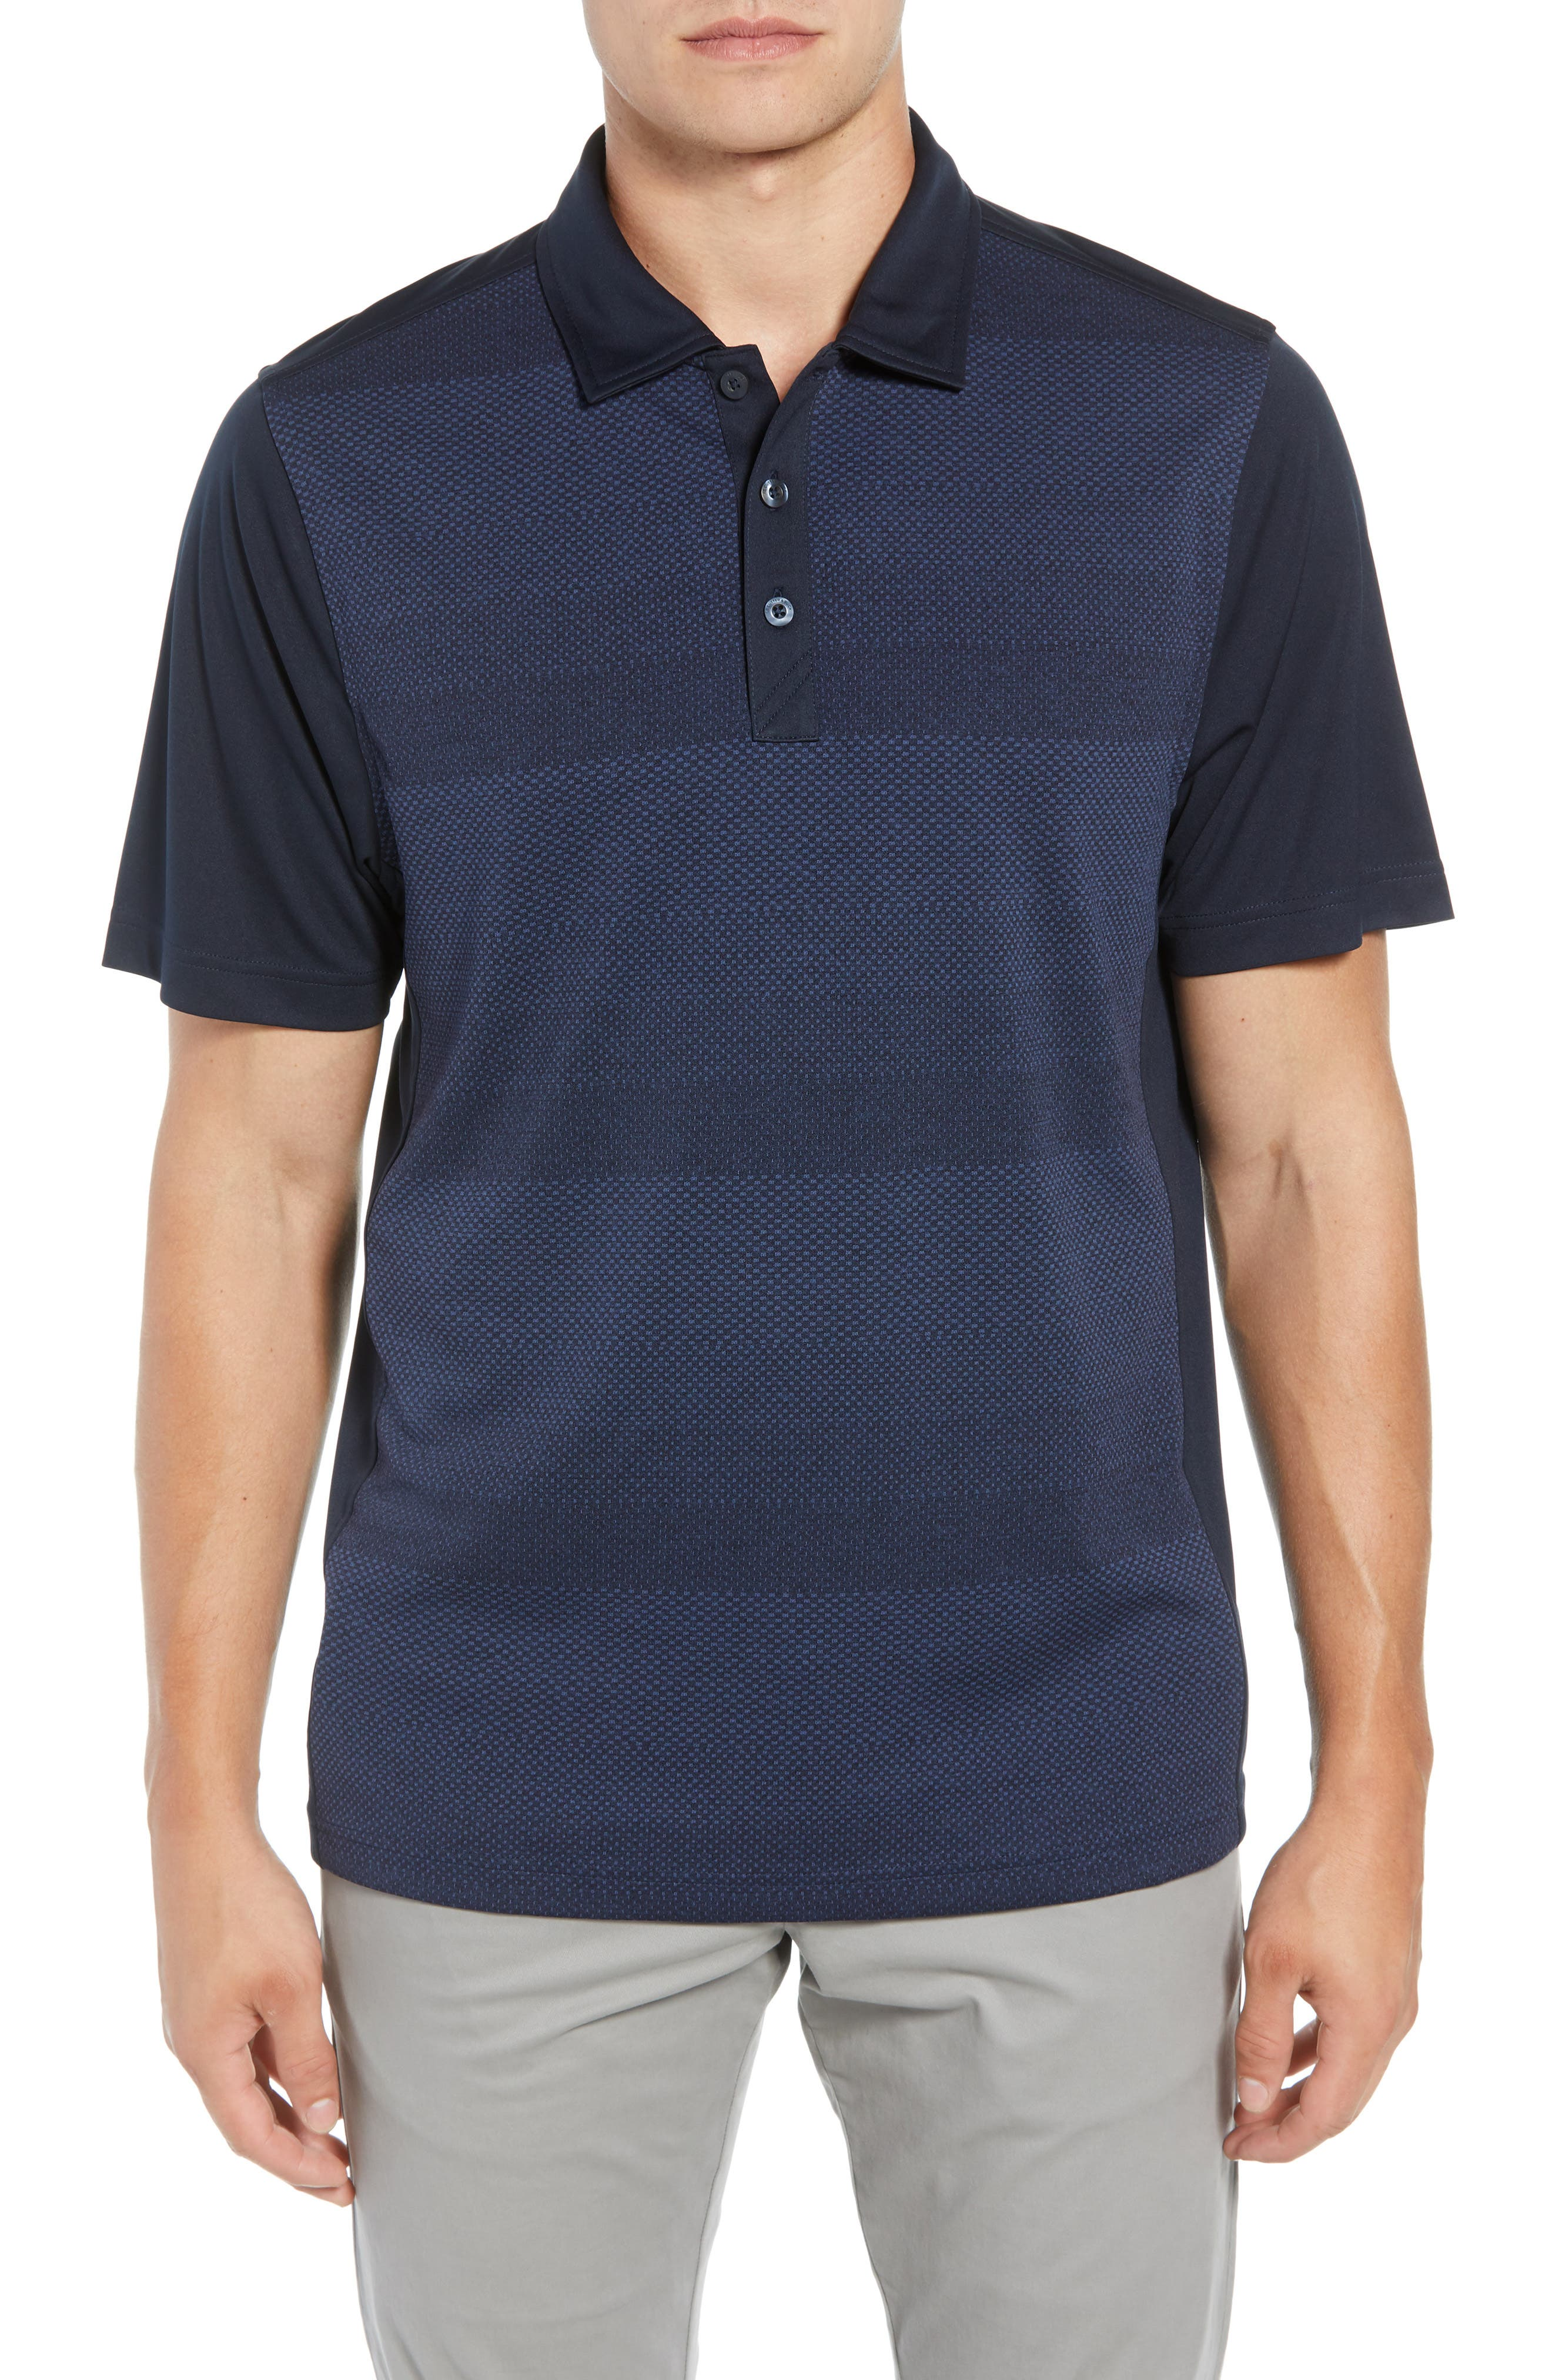 Crescent DryTec Microprint Polo,                             Main thumbnail 1, color,                             LIBERTY NAVY